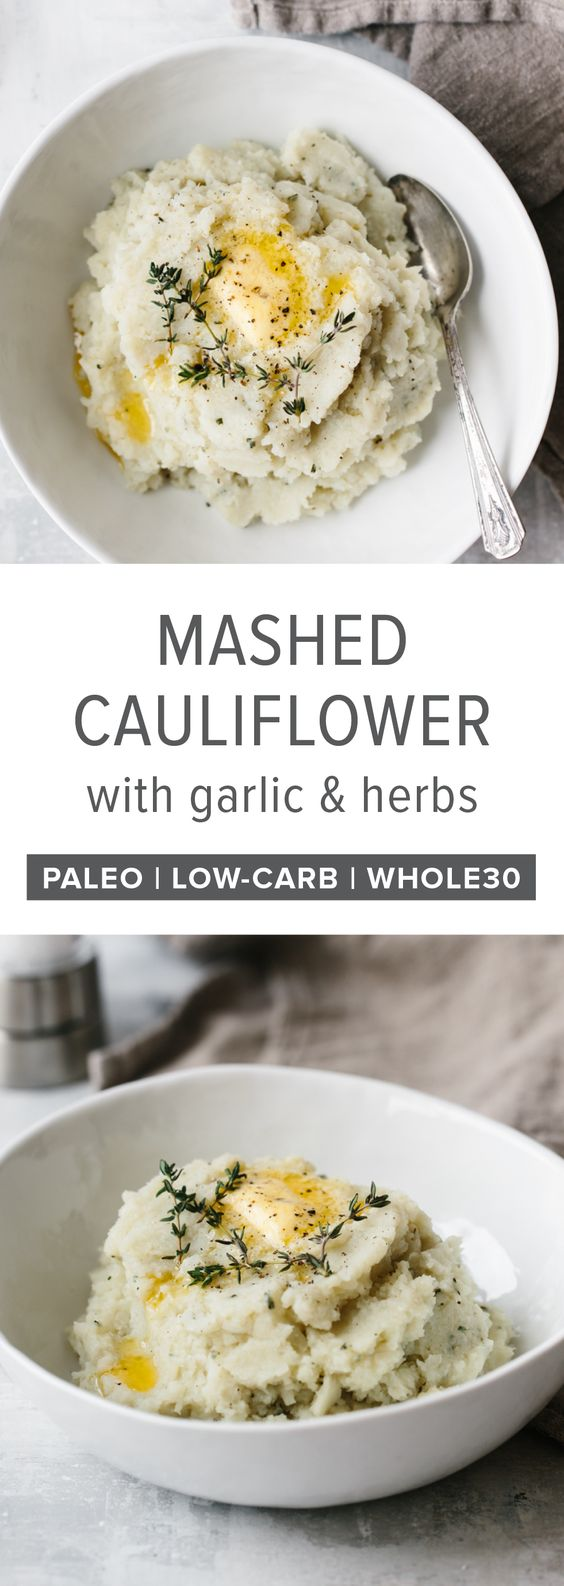 Mashed Cauliflower with Garlic and Herbs - Healthy Thanksgiving Dinner Recipes that are Insanely Delicious